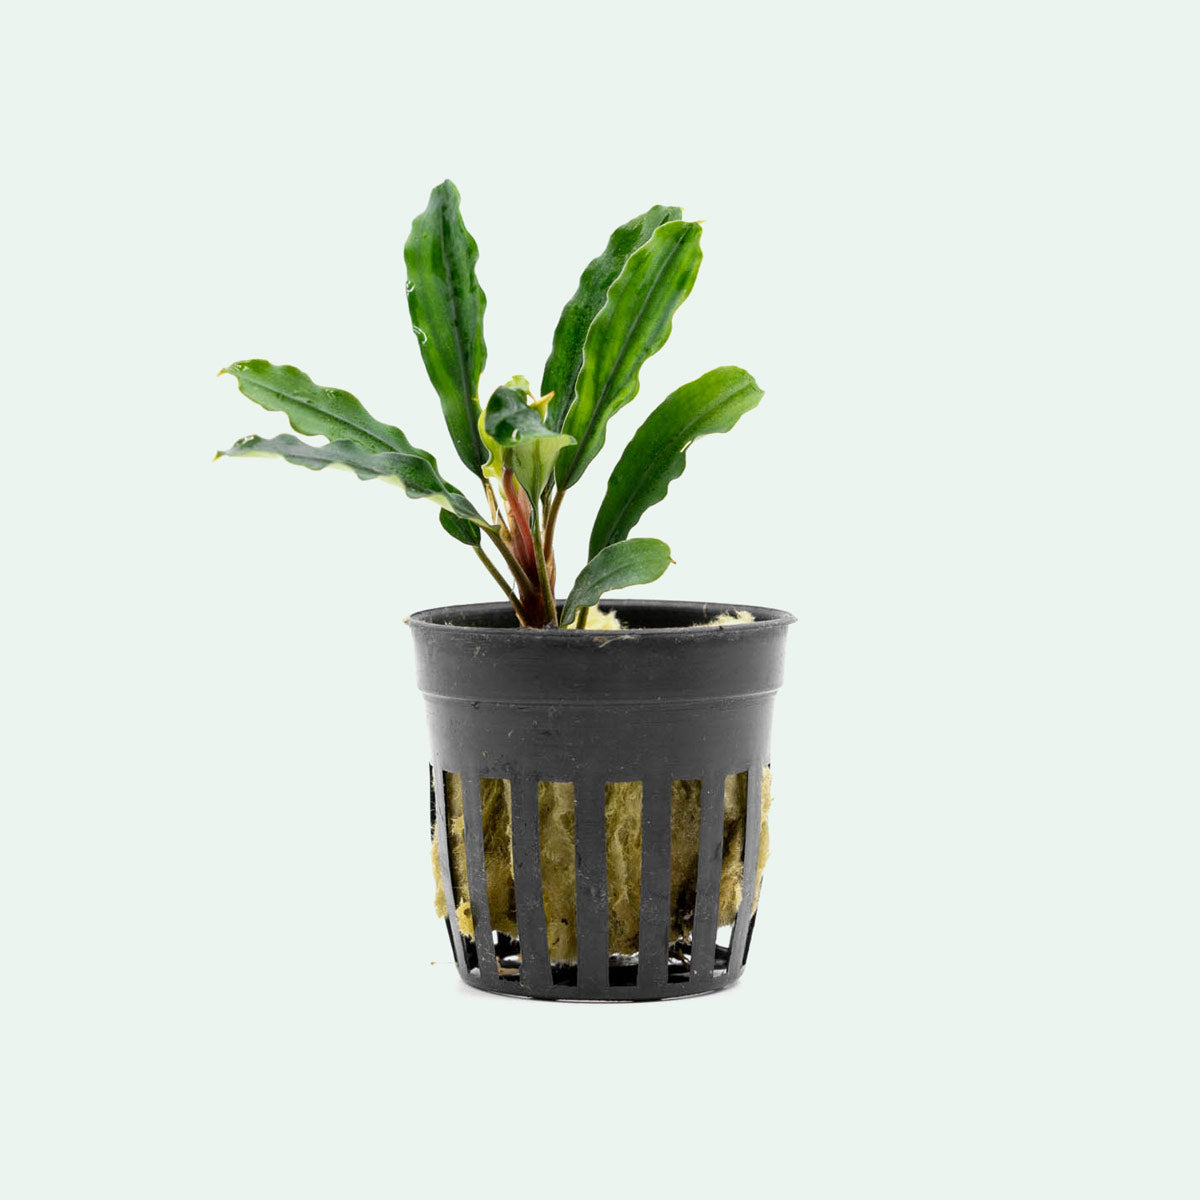 Shop Bucephalandra Kedagang Green Aquatic Plants - Glass Aqua